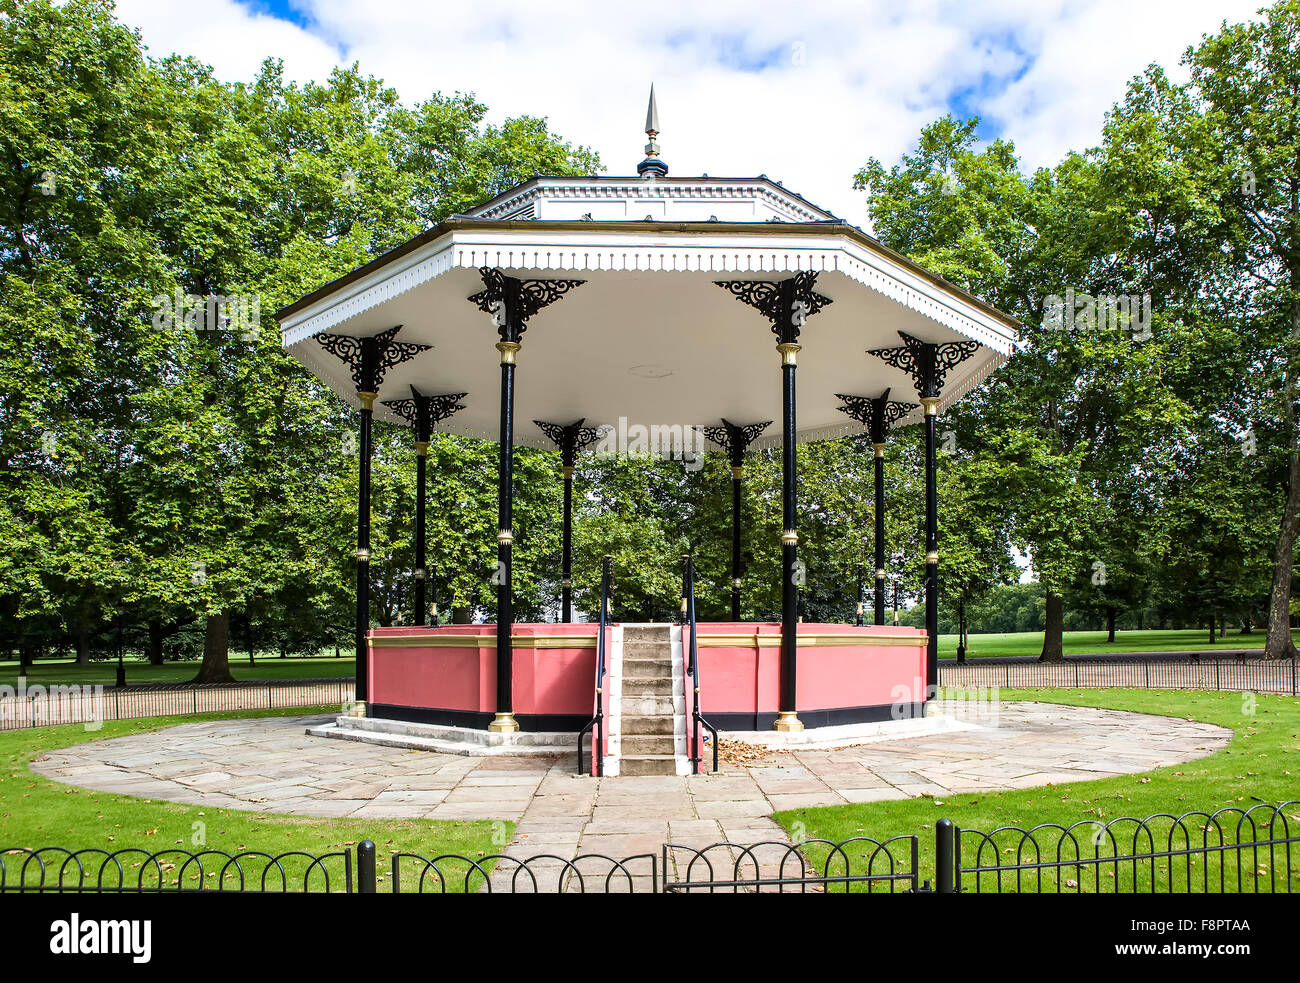 The Bandstand in Londons Hyde Park - Stock Image